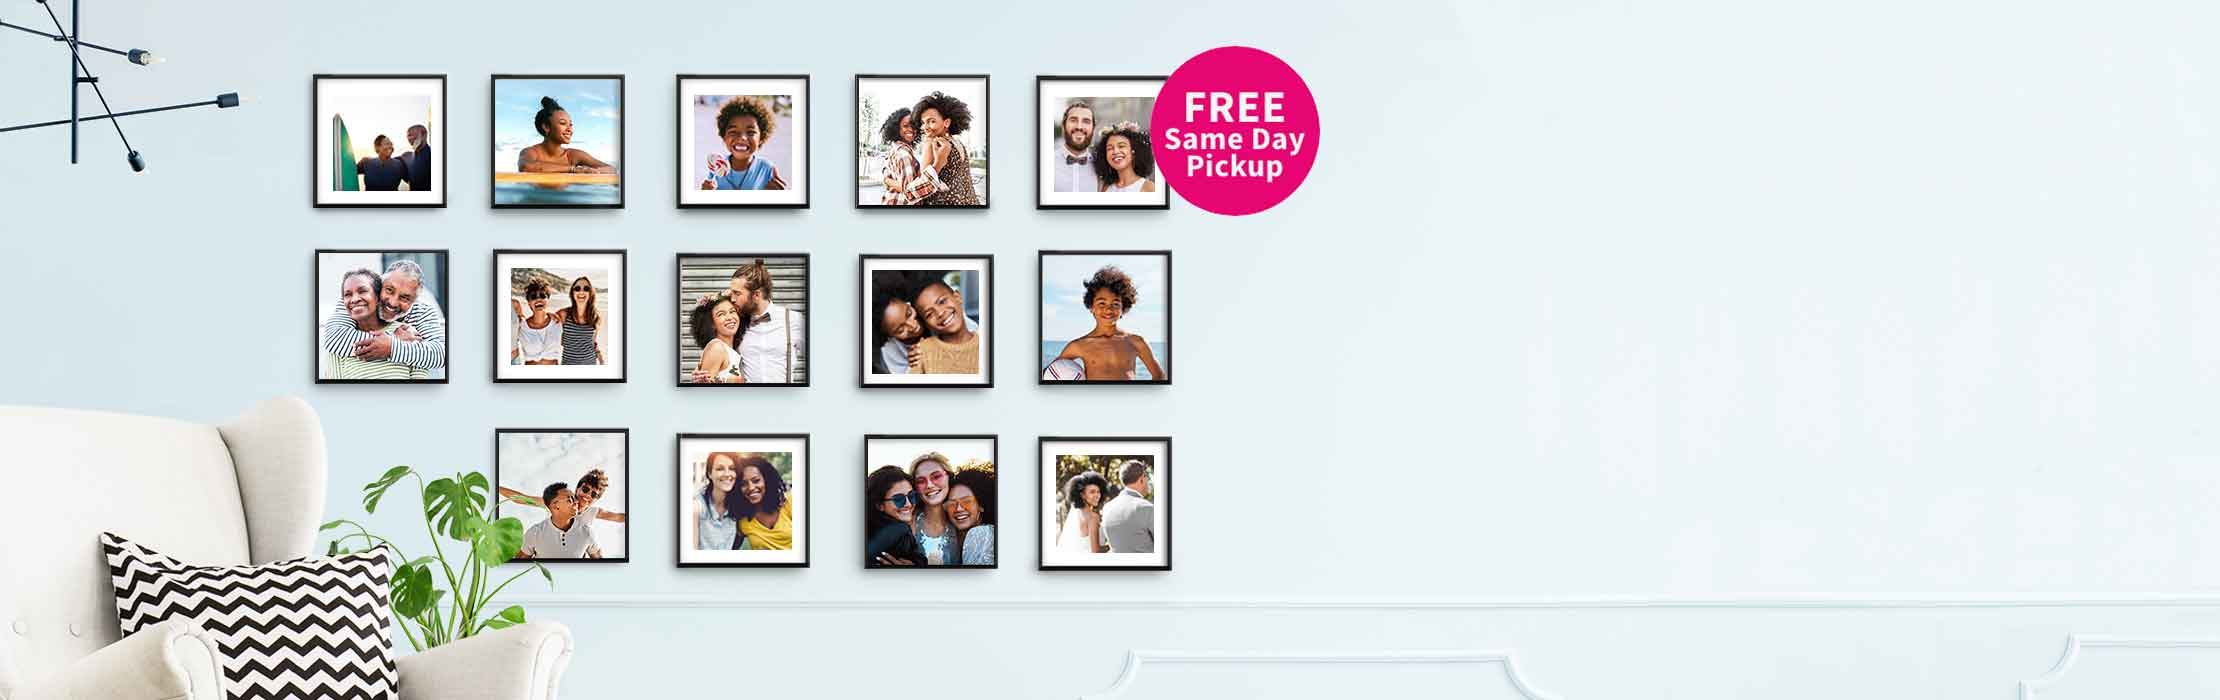 FREE Same Day Pickup. Fill your walls with fun.